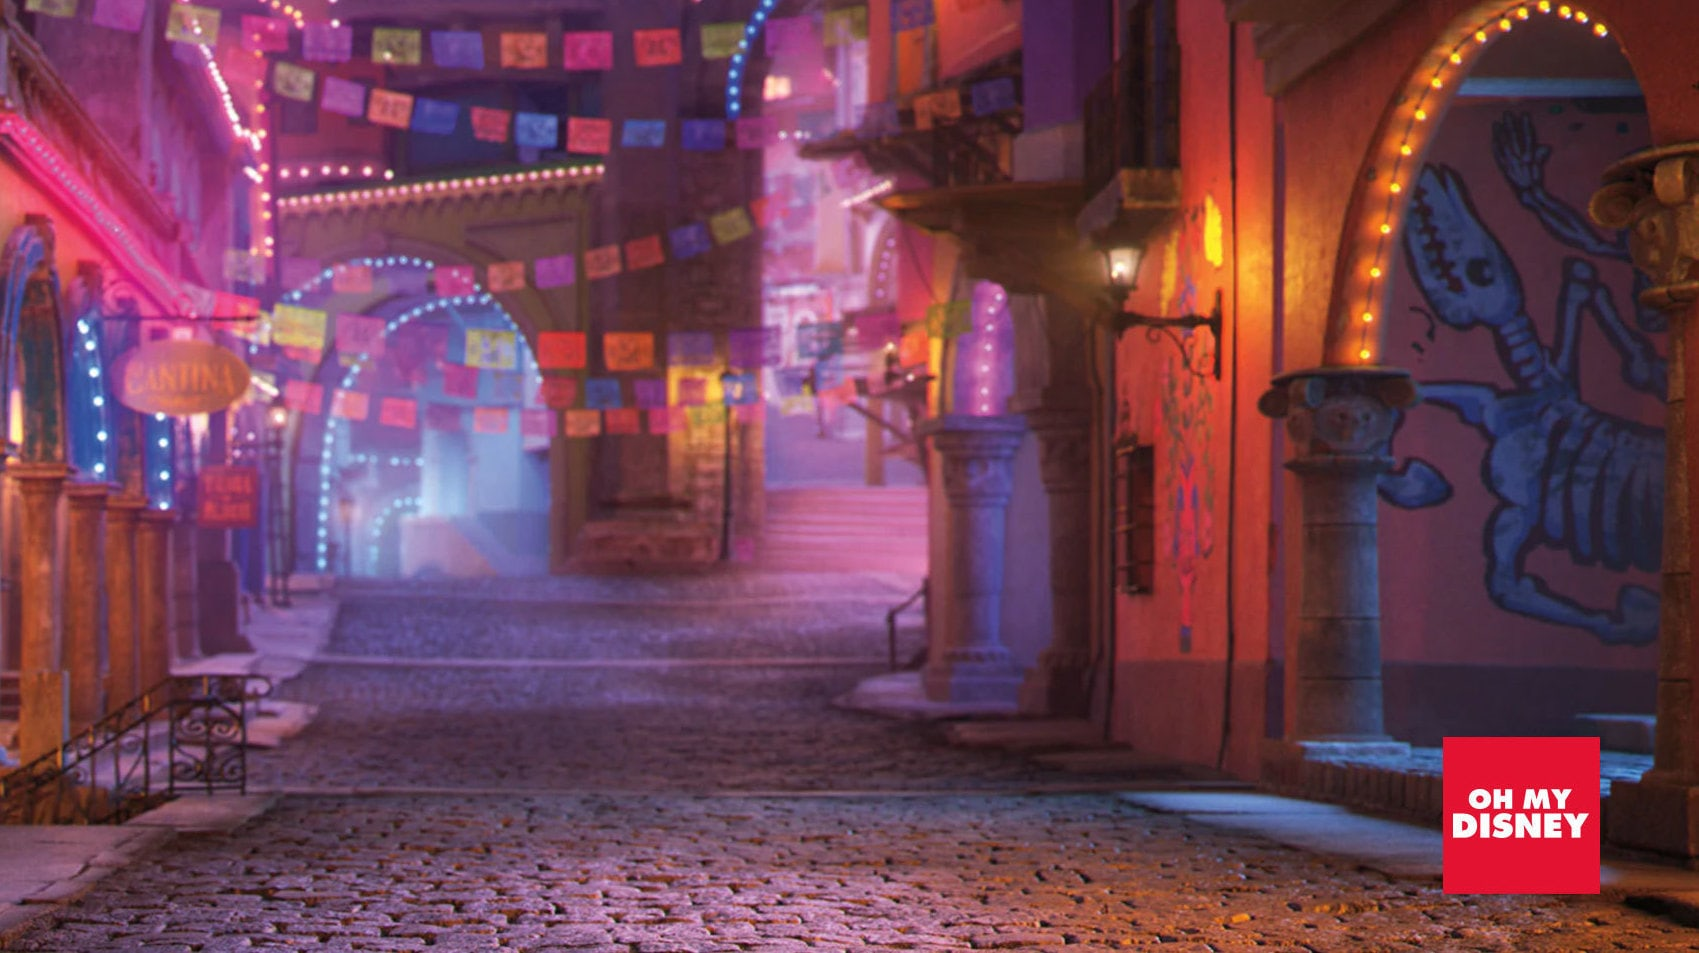 Brighten Up Your Next Video Call With Backgrounds From Pixar!